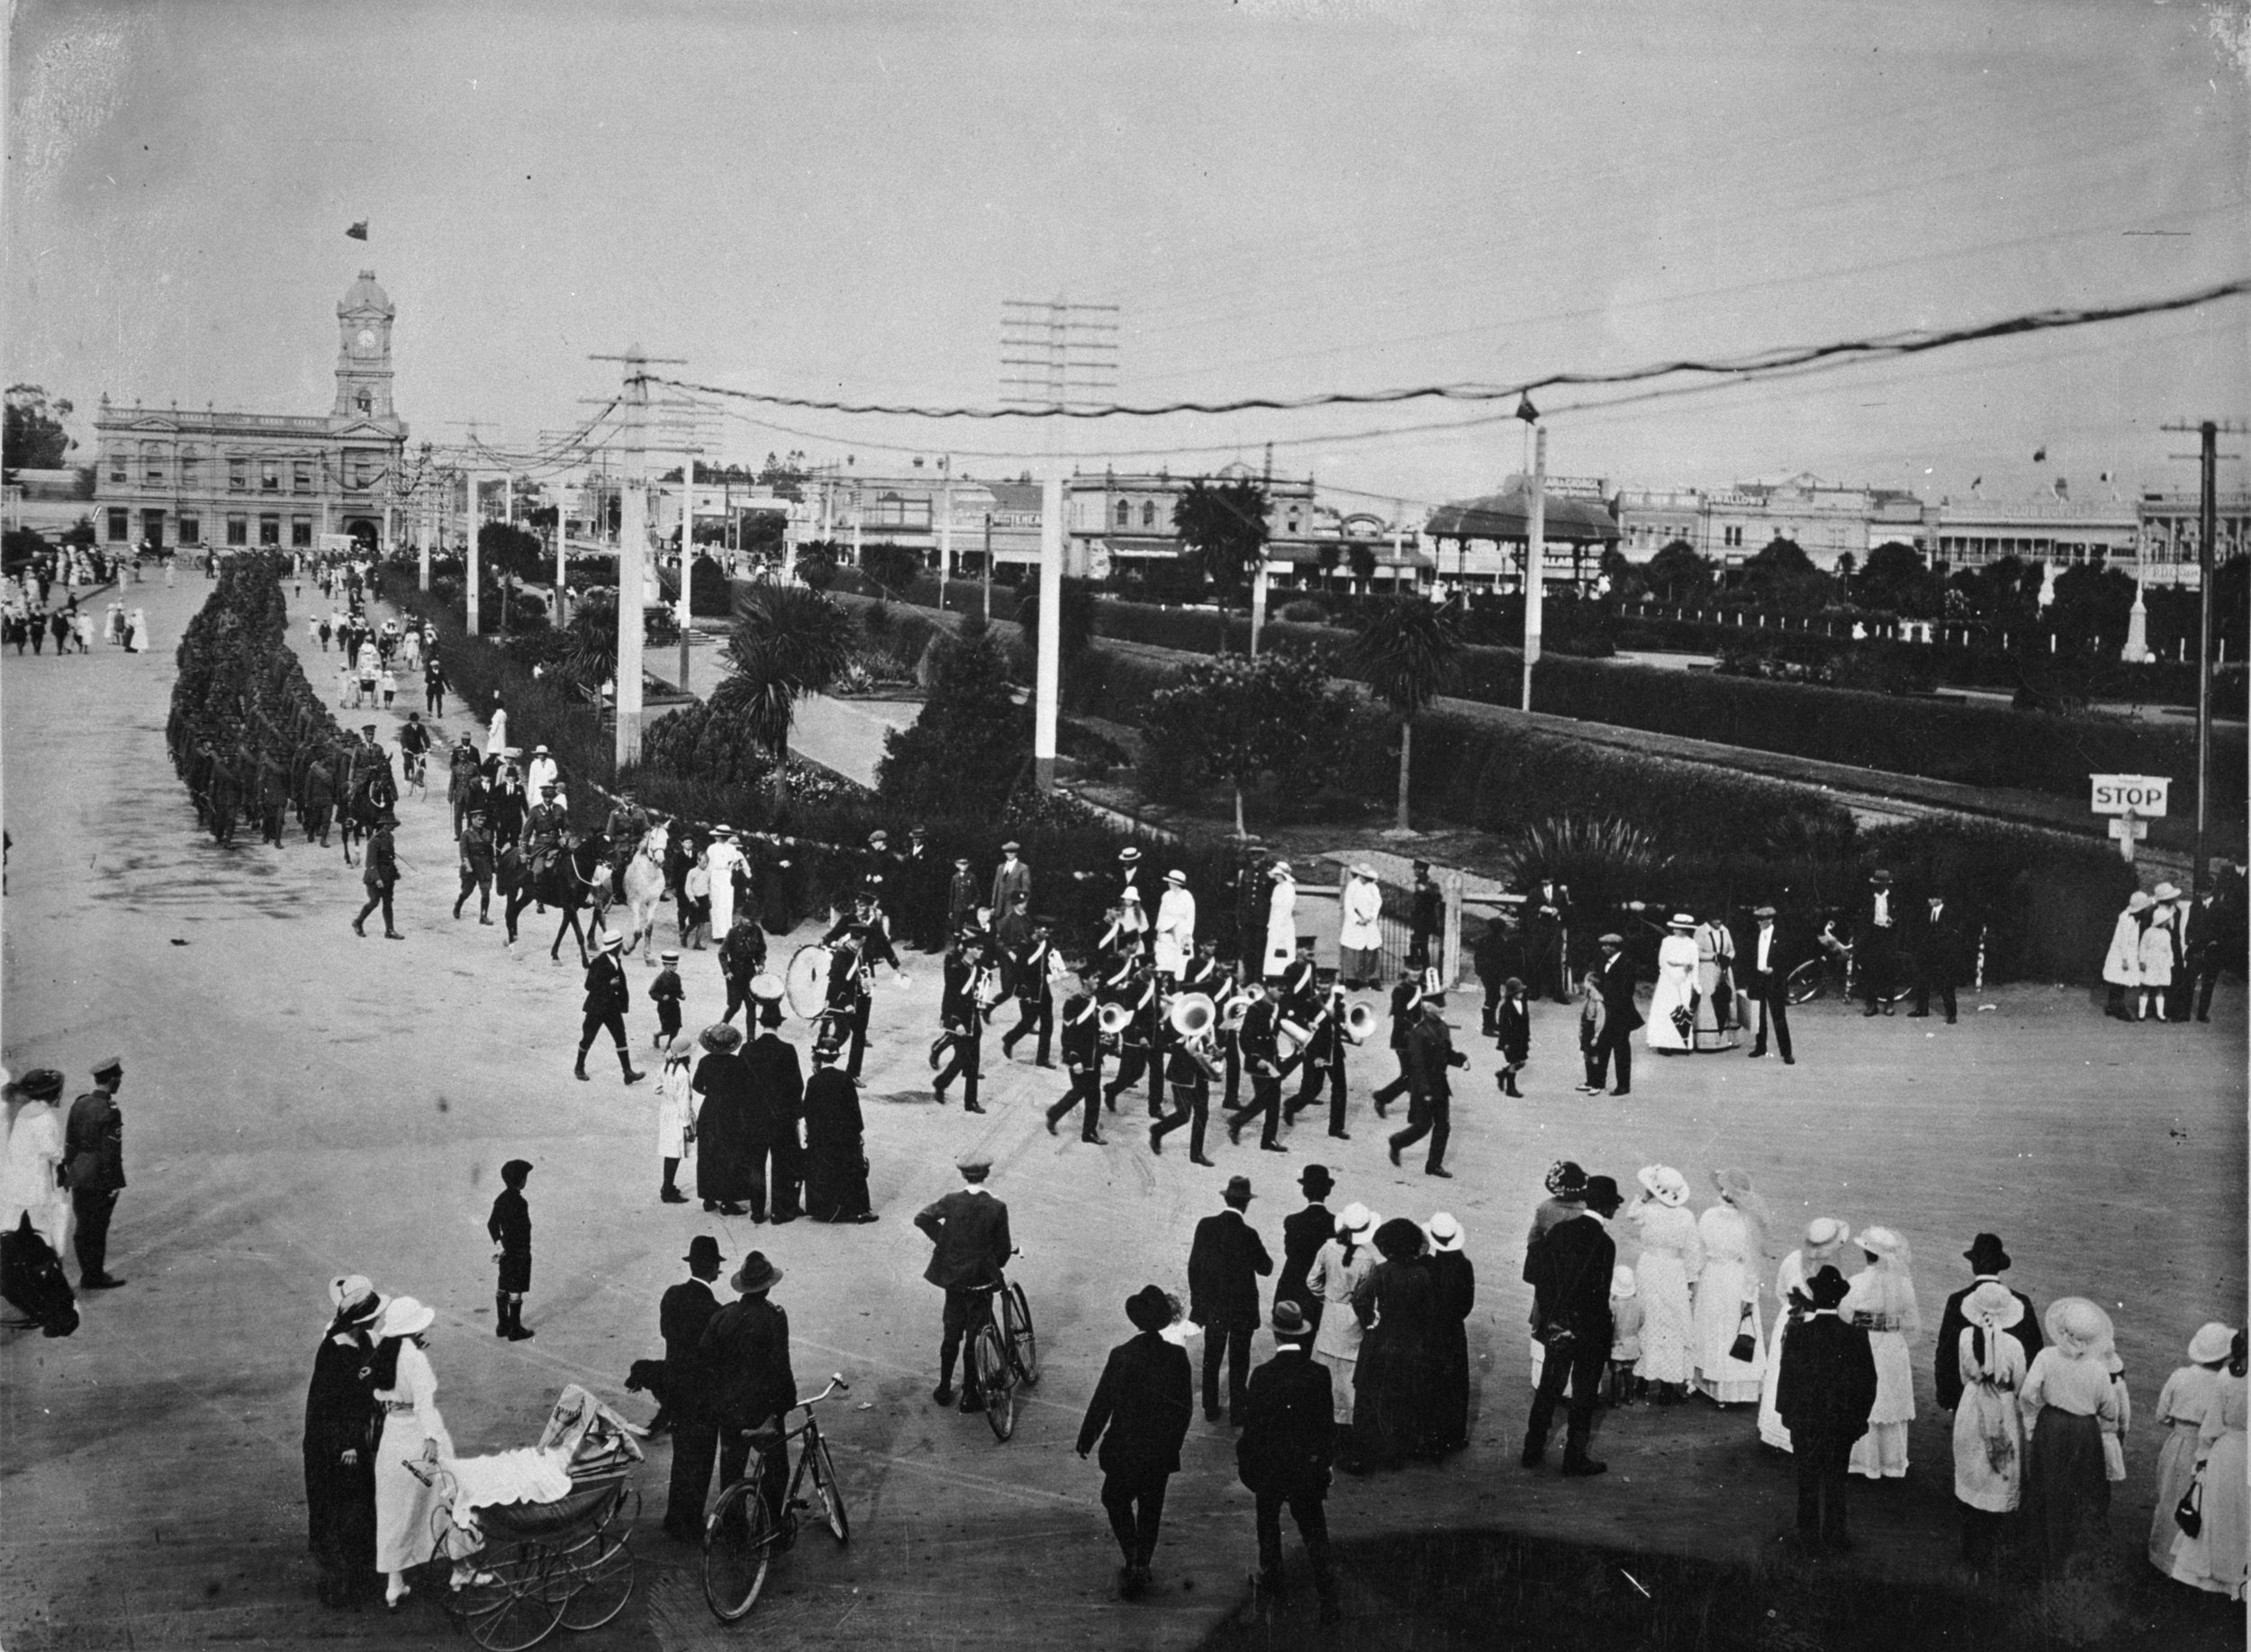 Soldiers march through The Square.